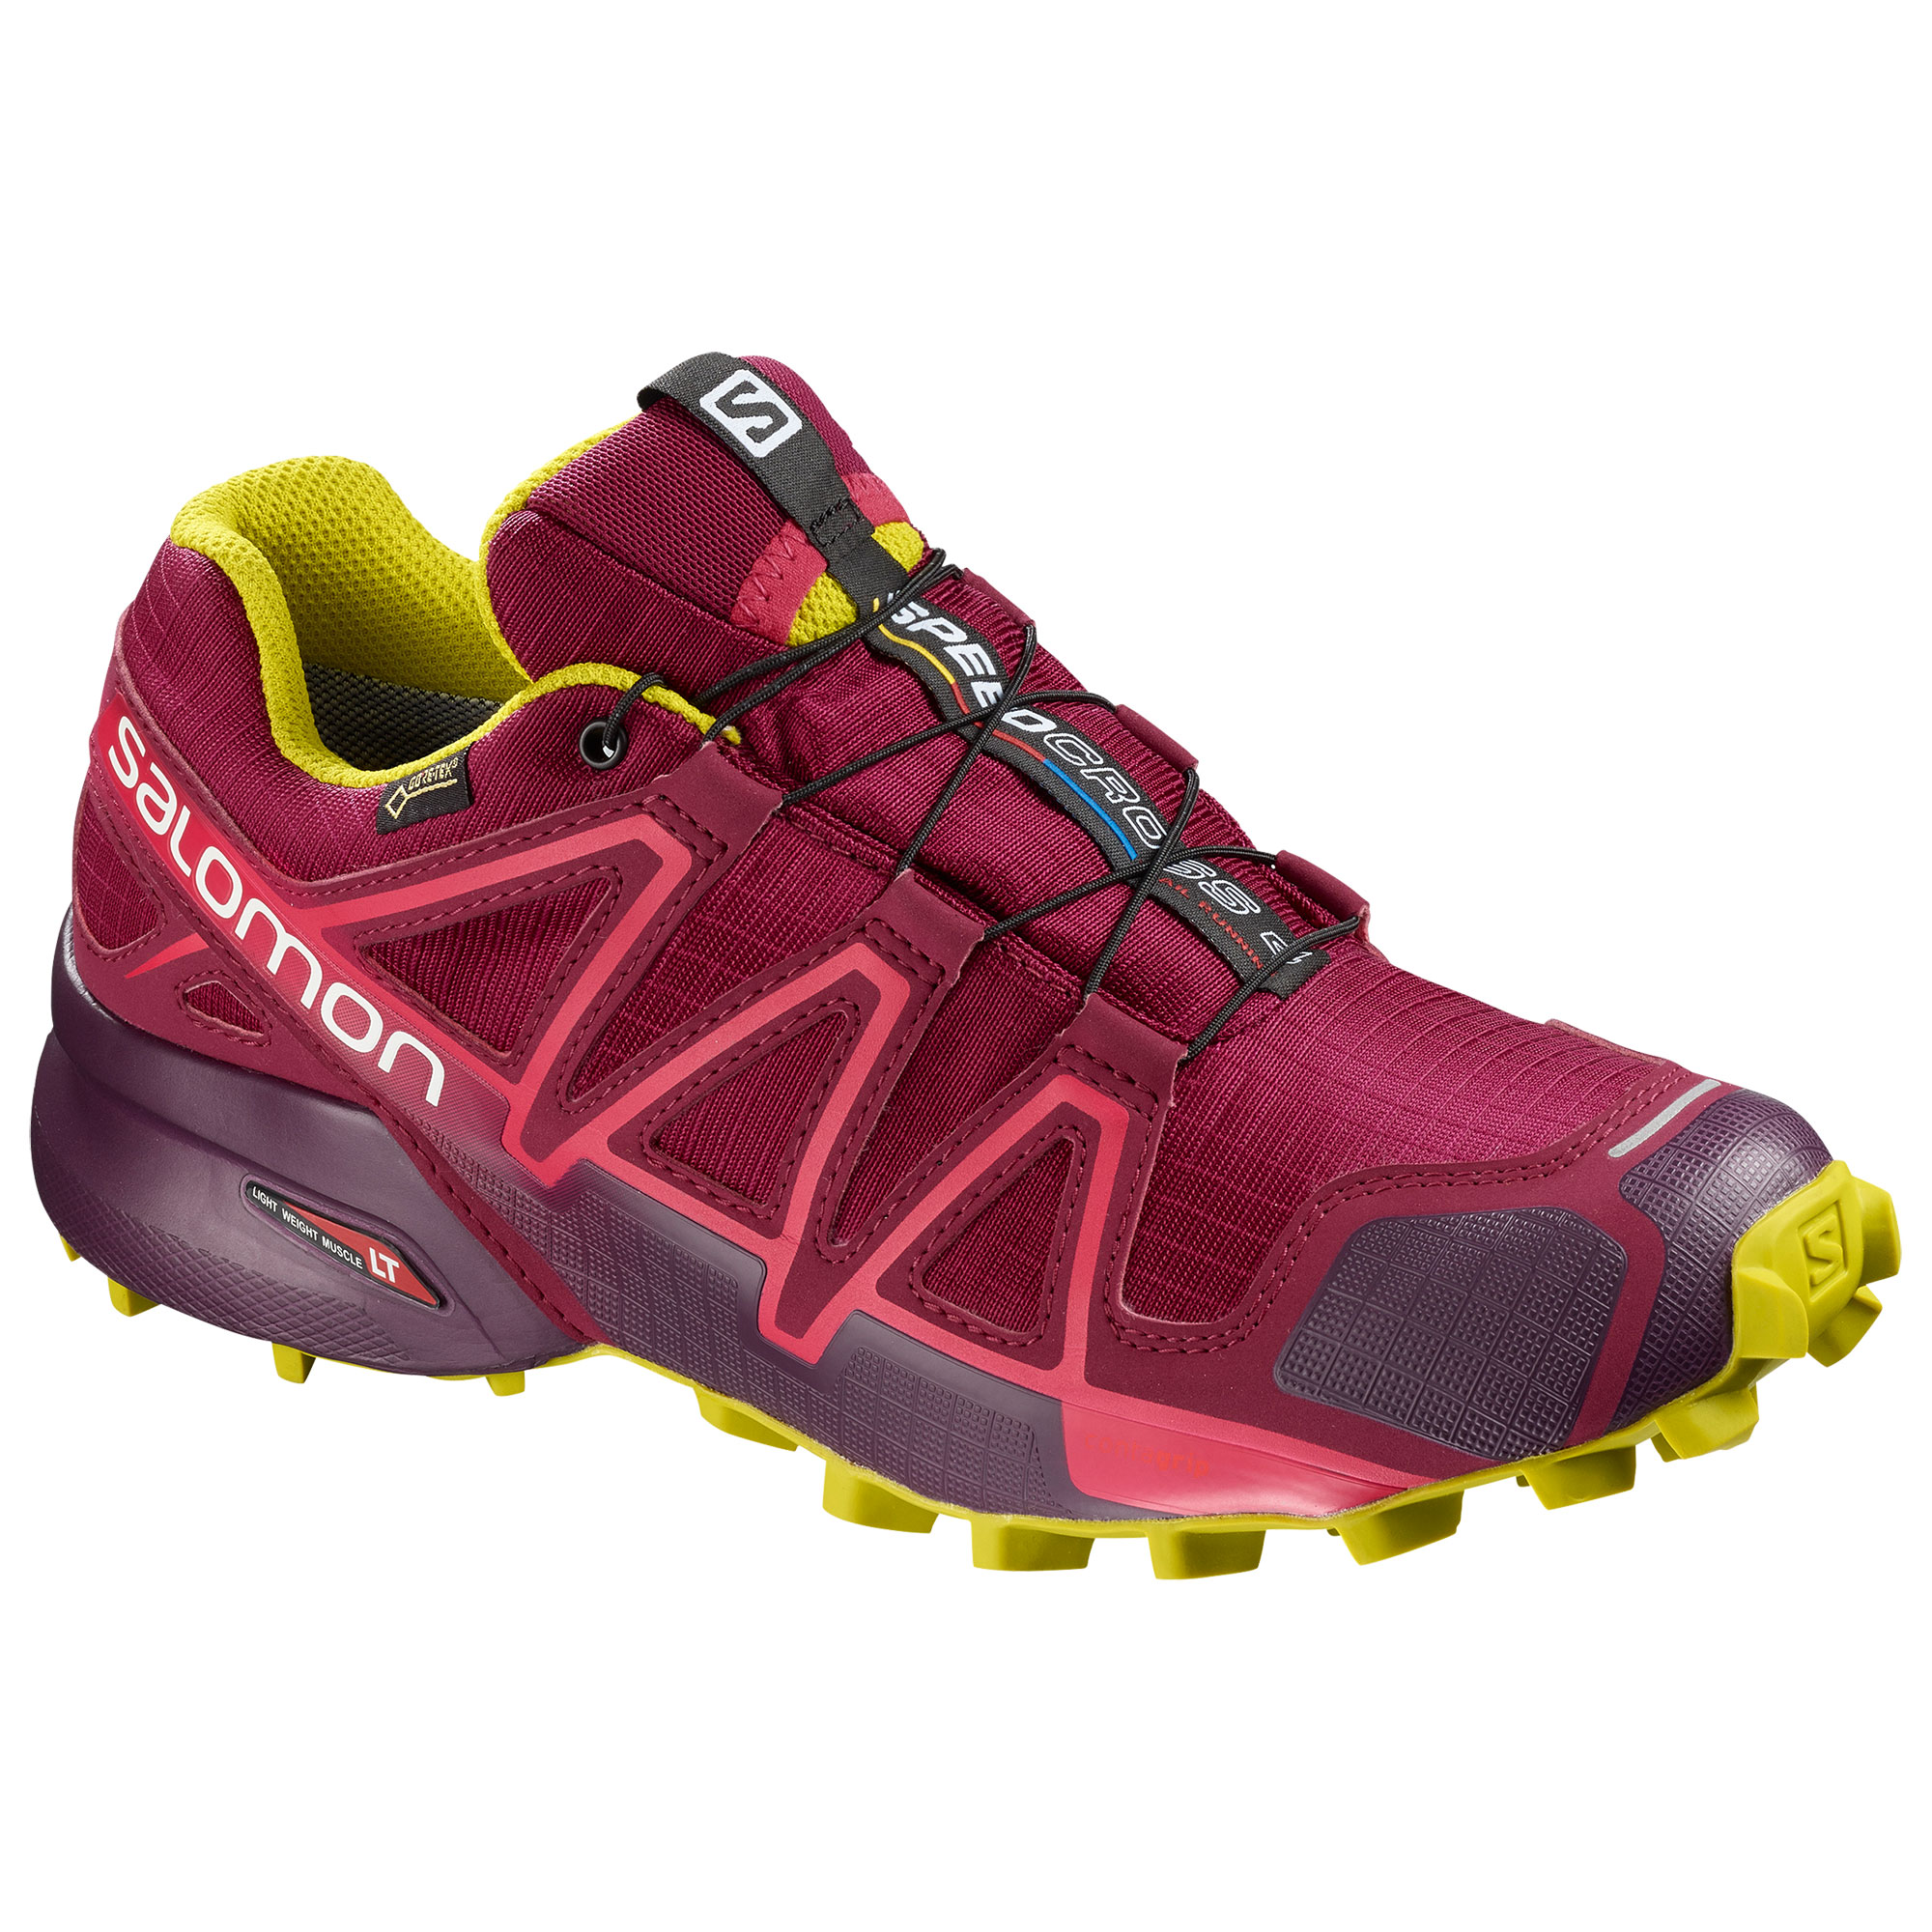 028cfd832ea02d Salomon Speedcross 4 GTX W - Women s w  Free S H — 29 models